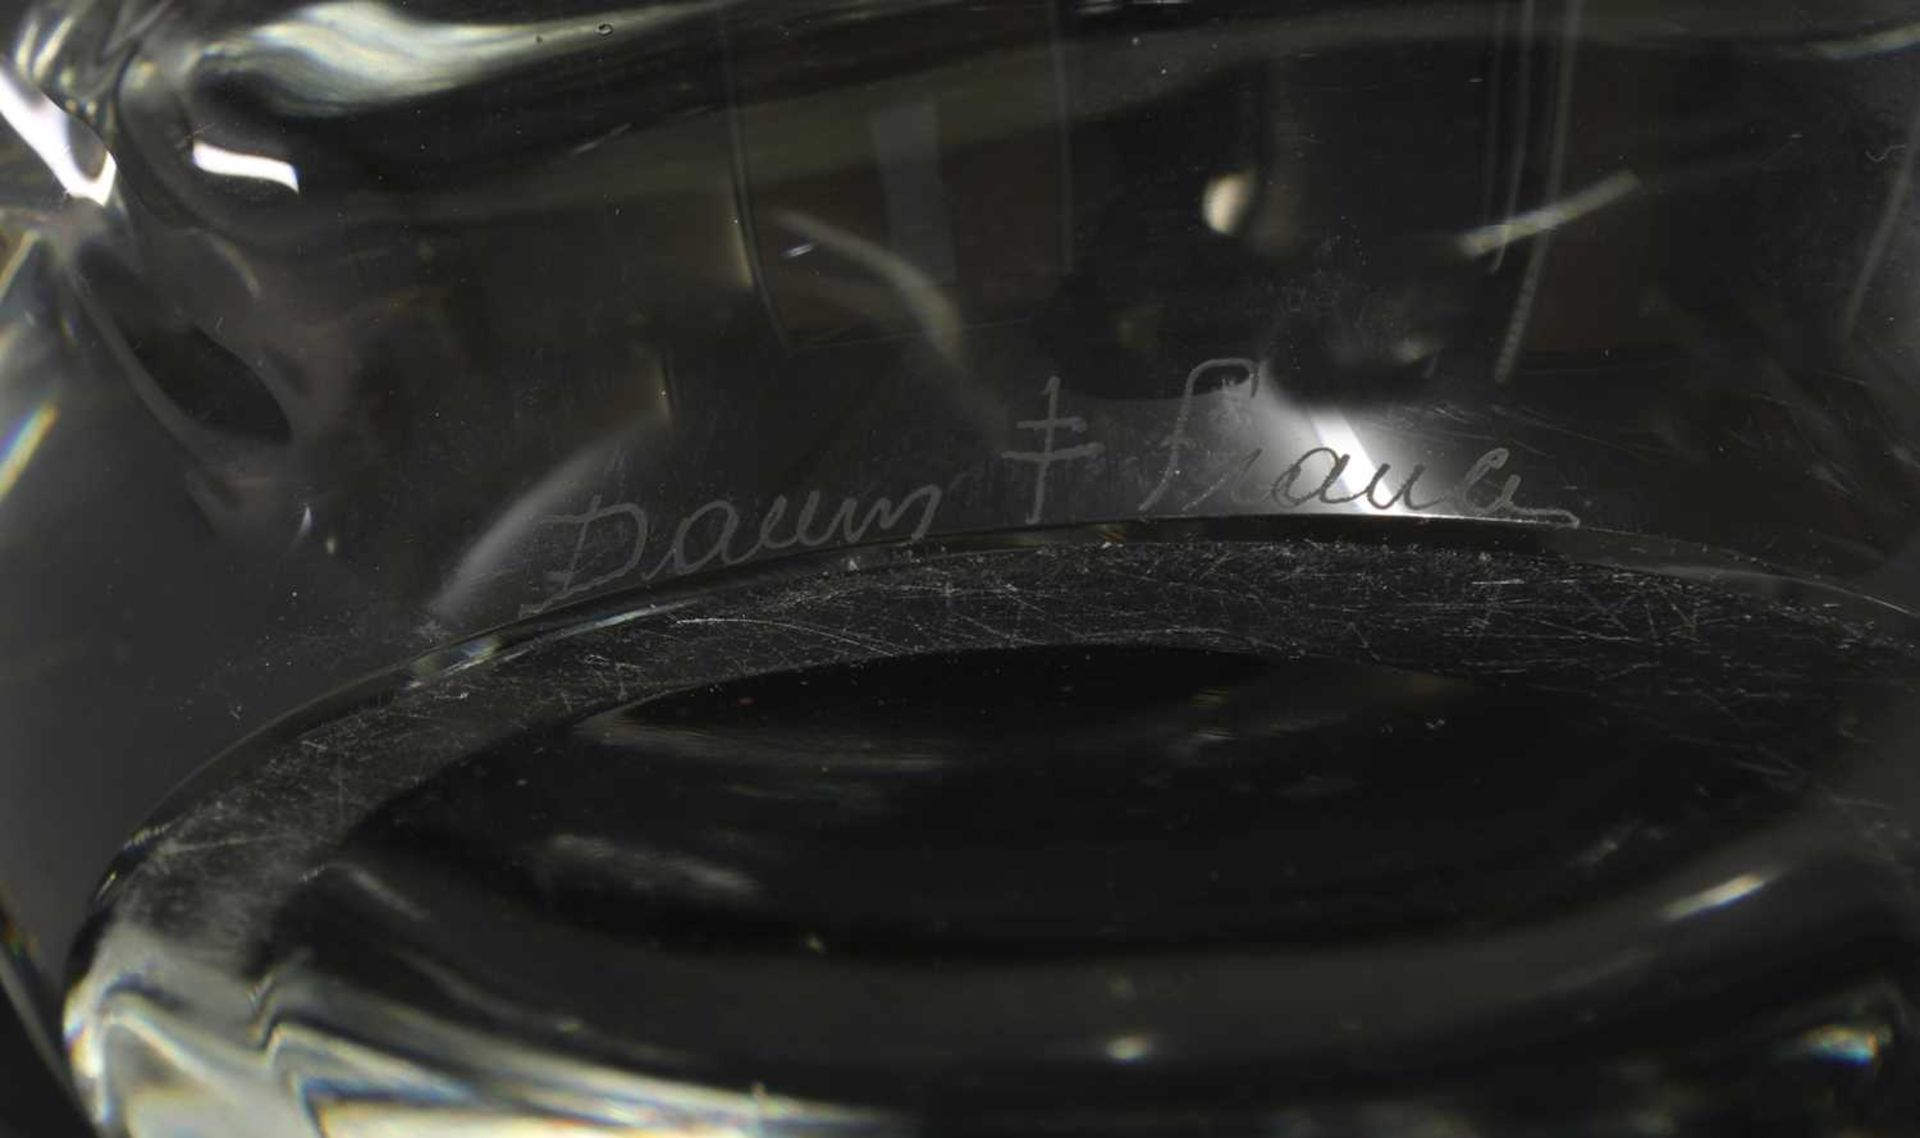 A Daum clear glass bowl, - Image 2 of 4